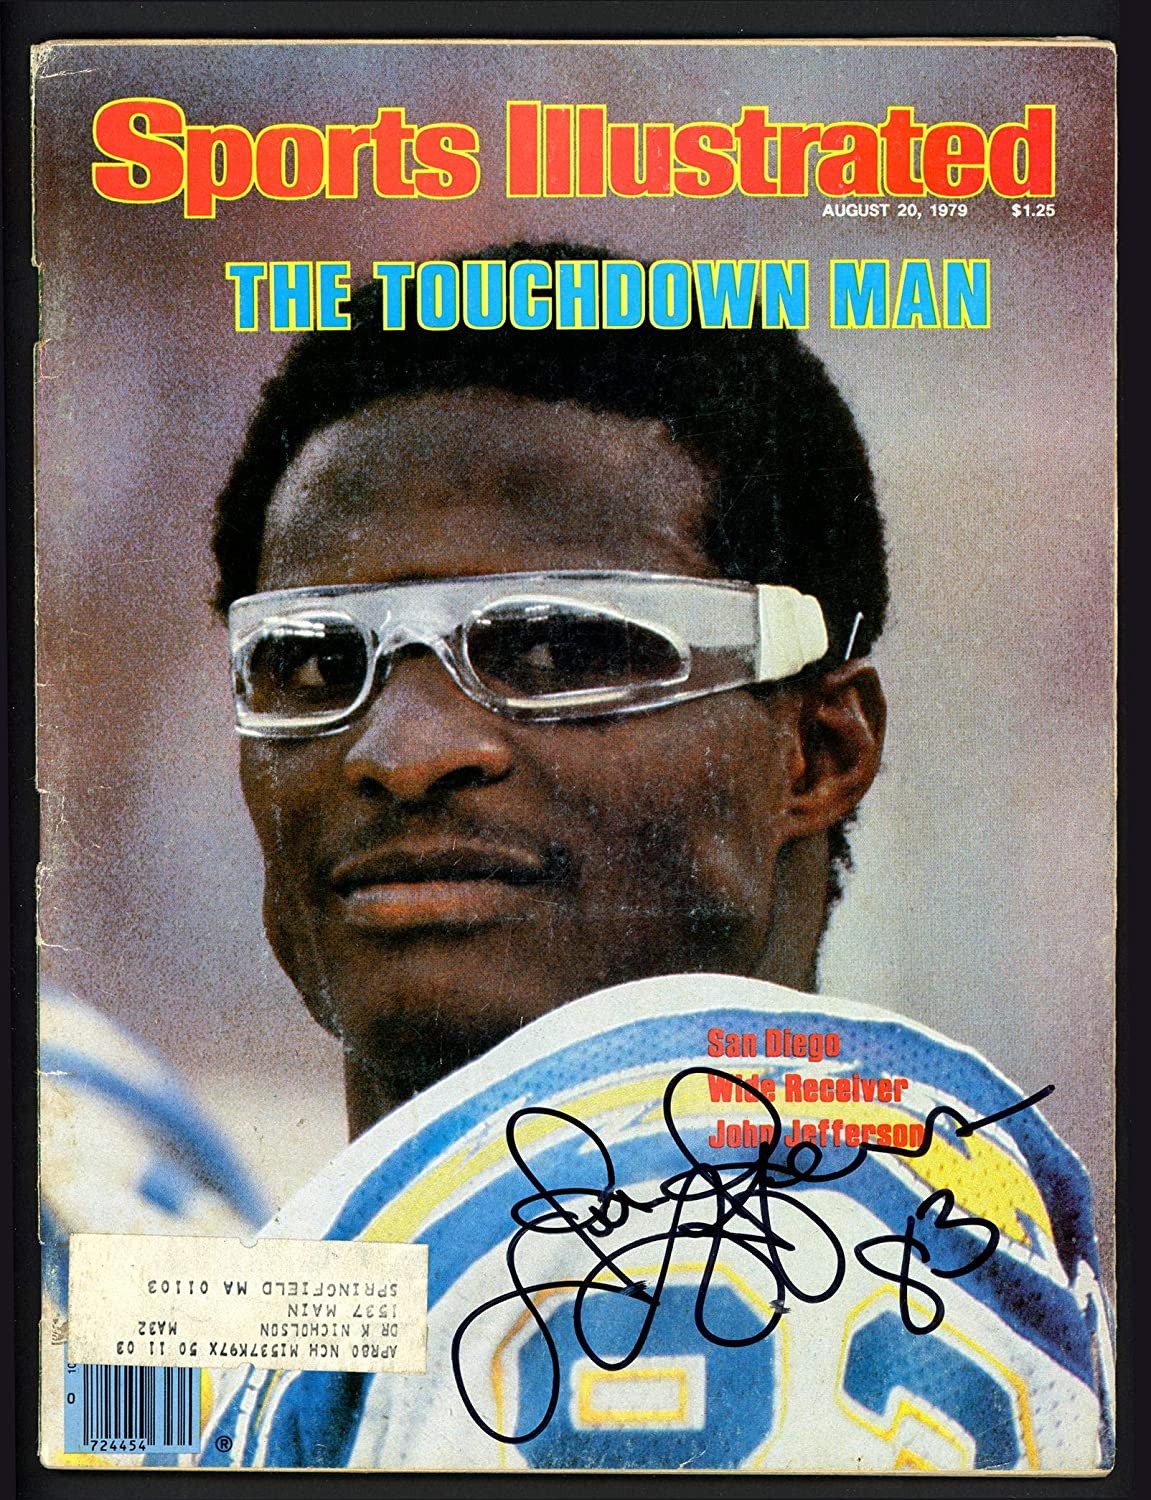 John Jefferson Autographed Sports Illustrated Magazine San Diego Chargers Beckett BAS #S76540 - Beckett Authentication